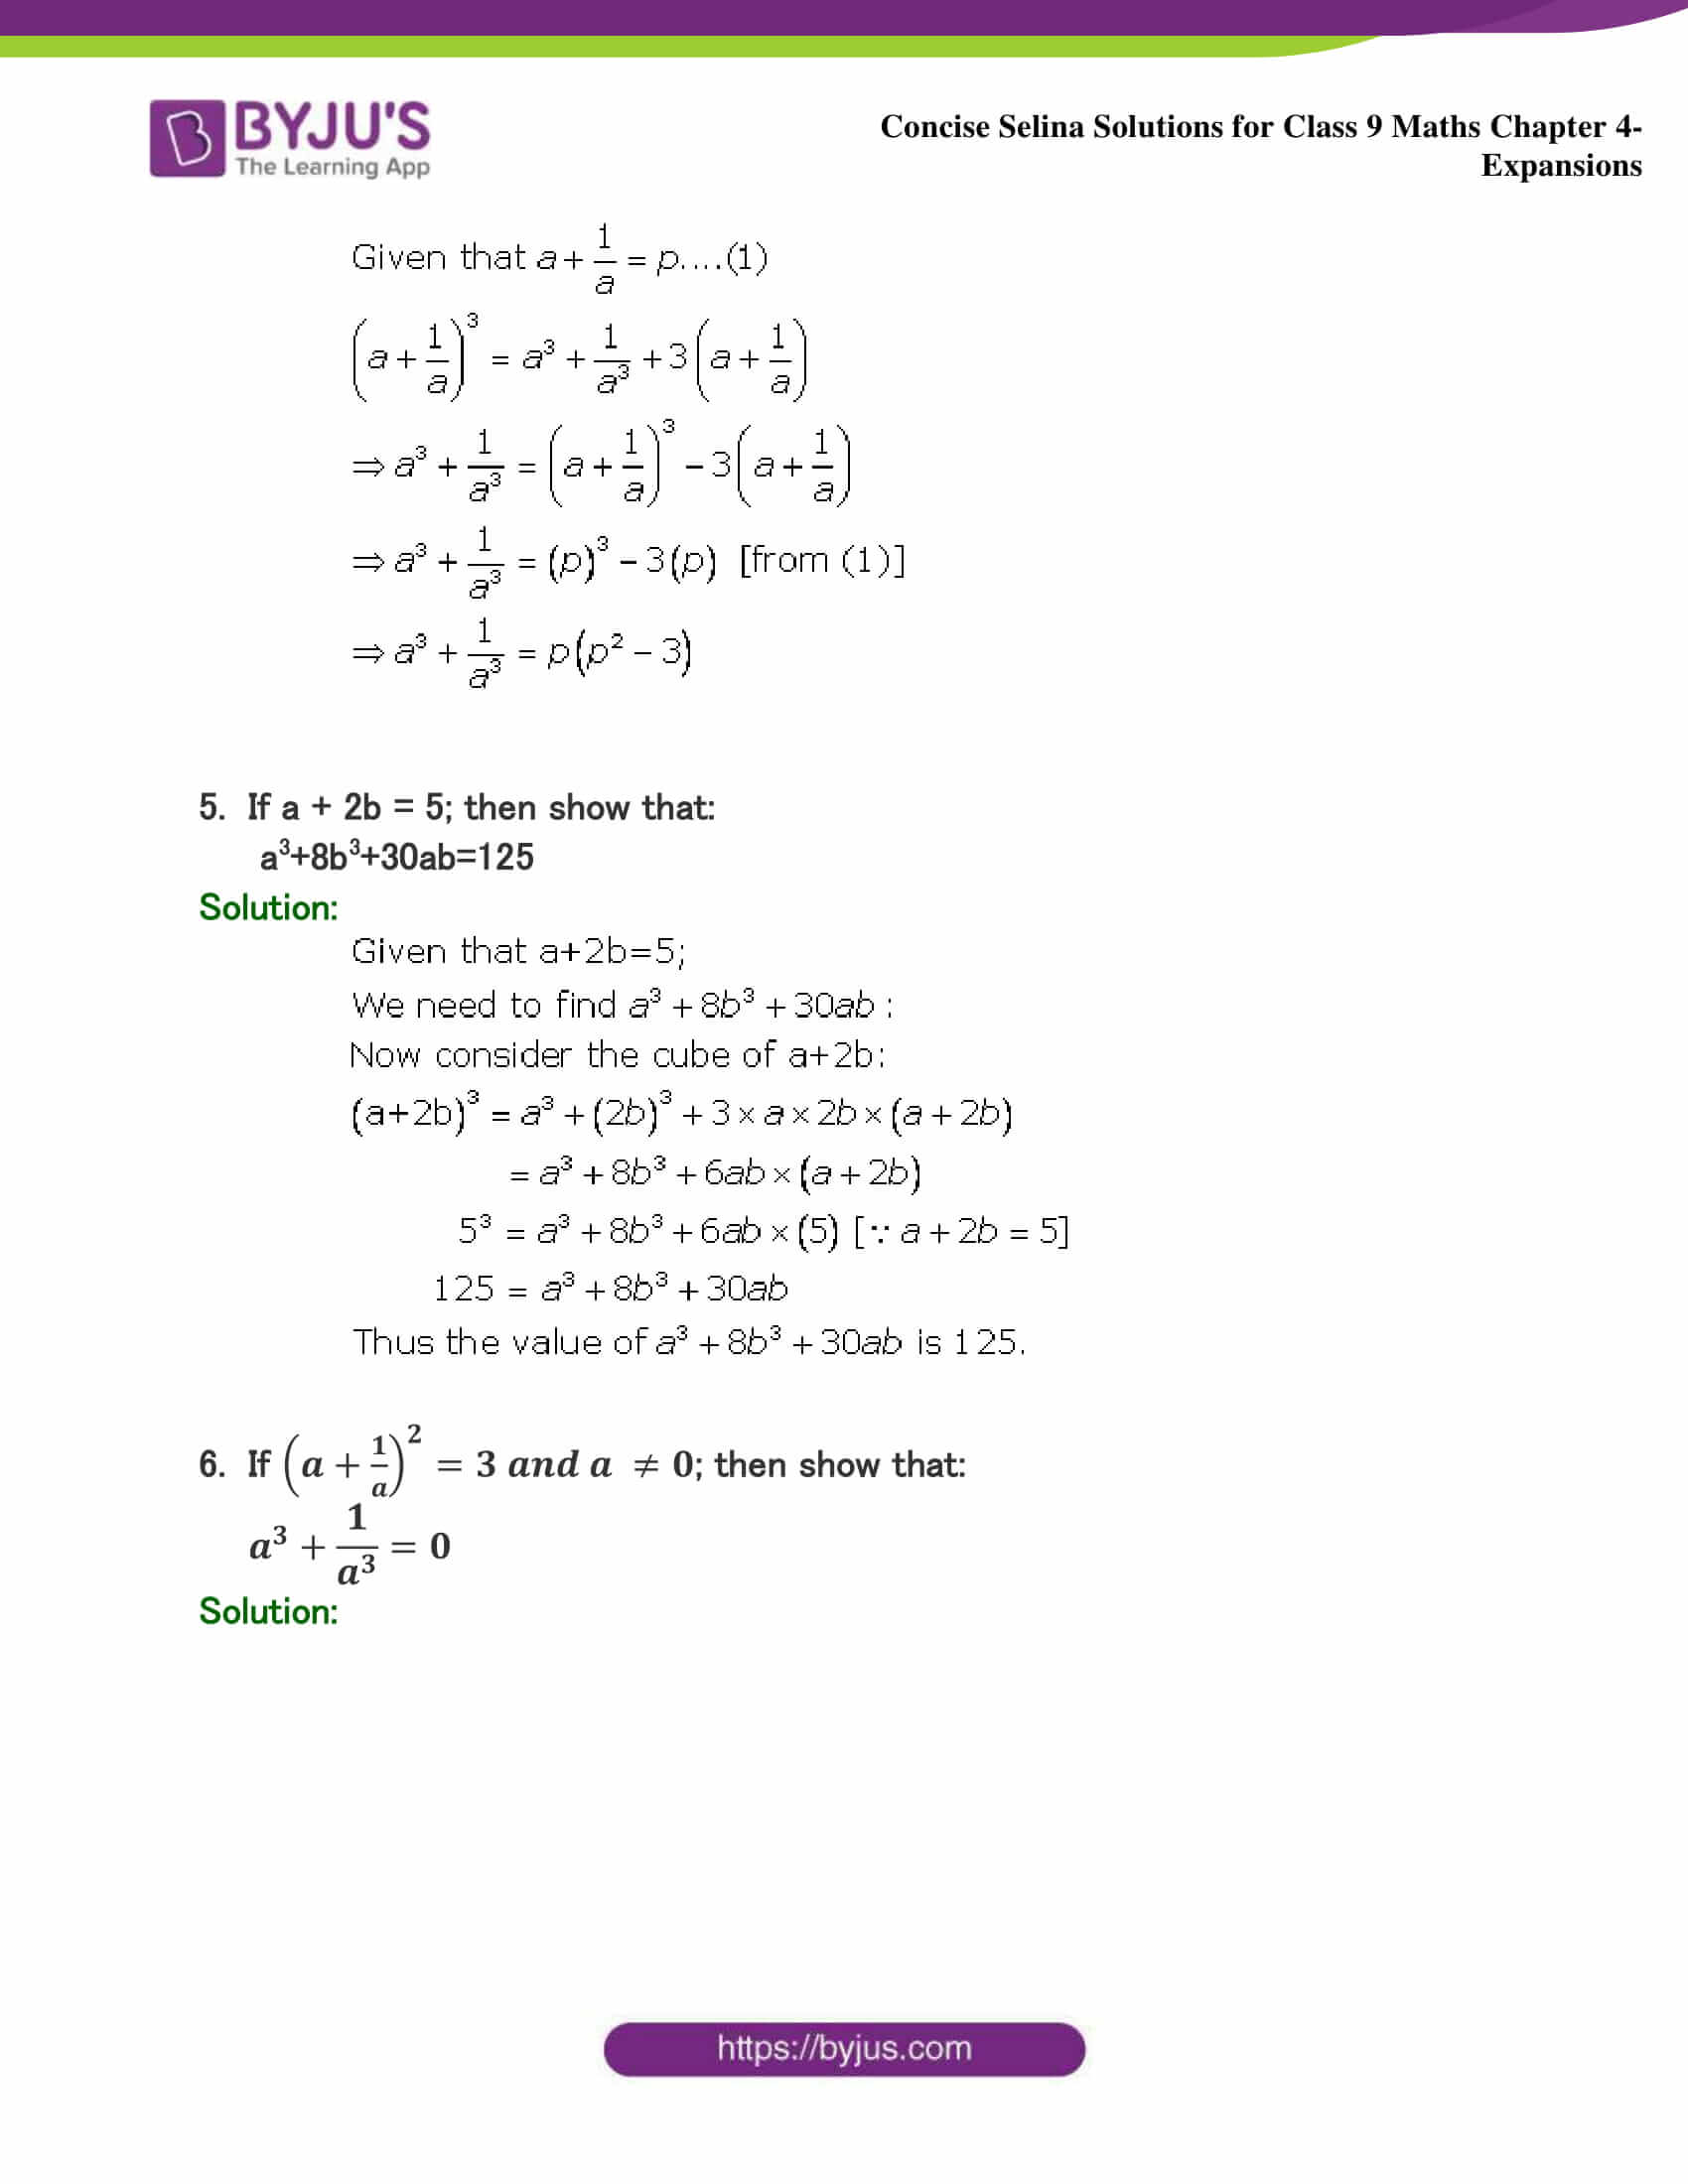 Selina Solutions Class 9 Maths Chapter 4 Expansions part 19